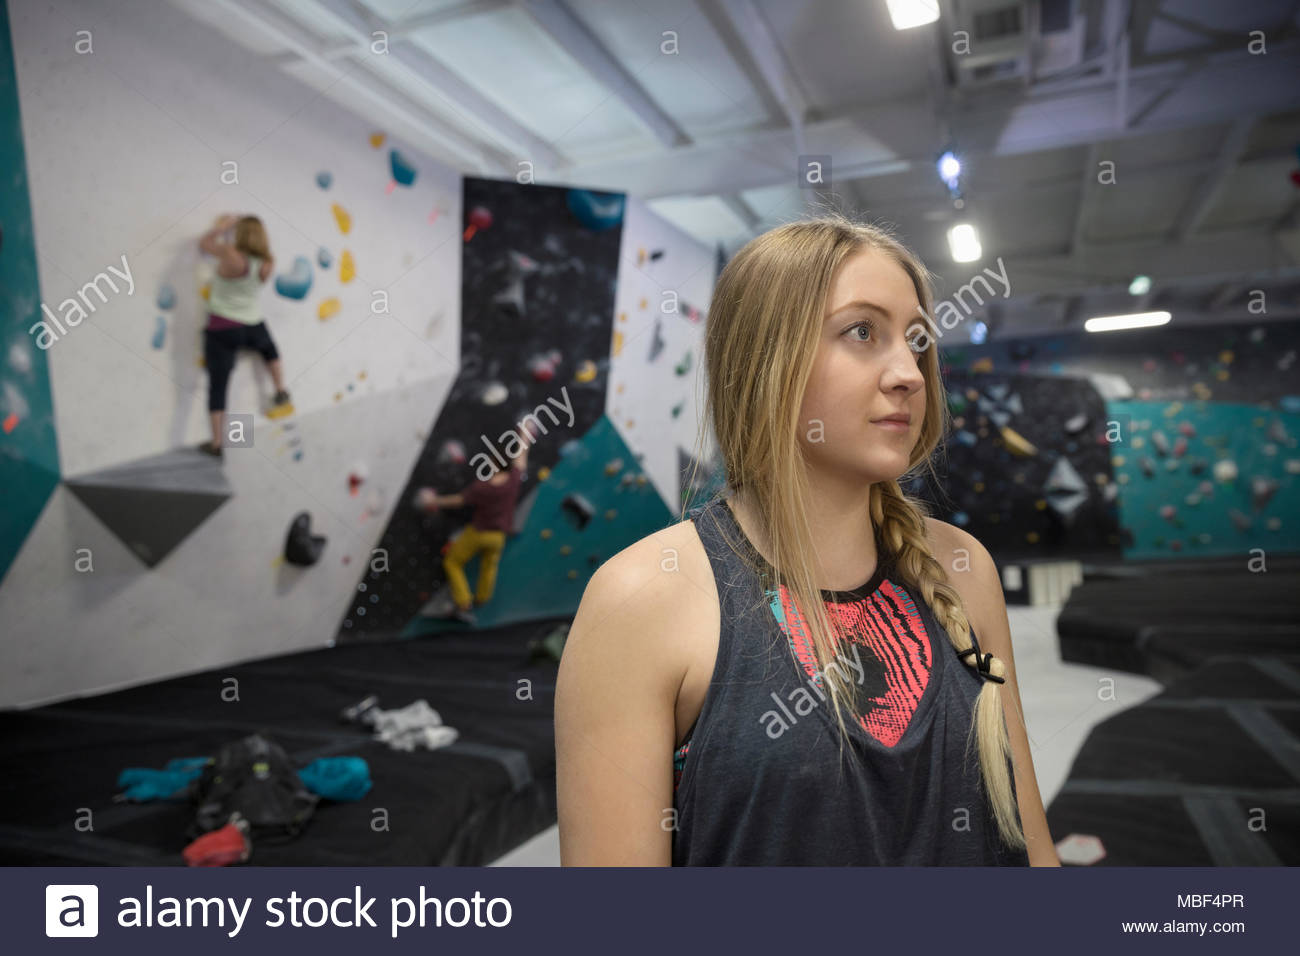 Determined, focused female rock climber at climbing gym - Stock Image